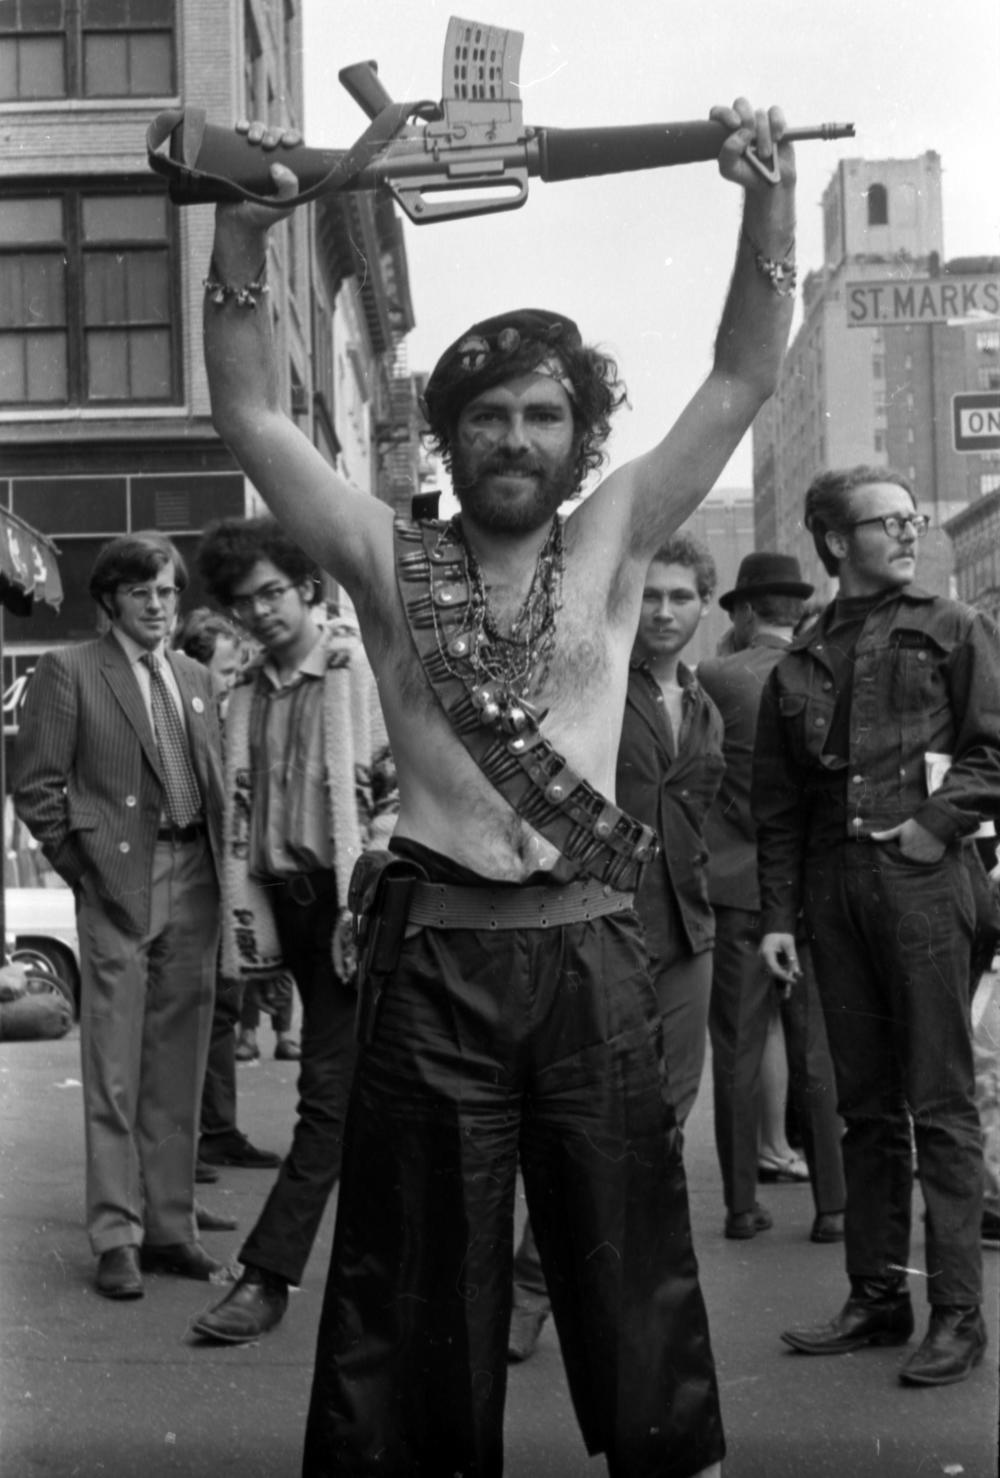 Sixties activist Jerry Rubin on St. Mark's Place. Like Travelerette, he is a fighter.